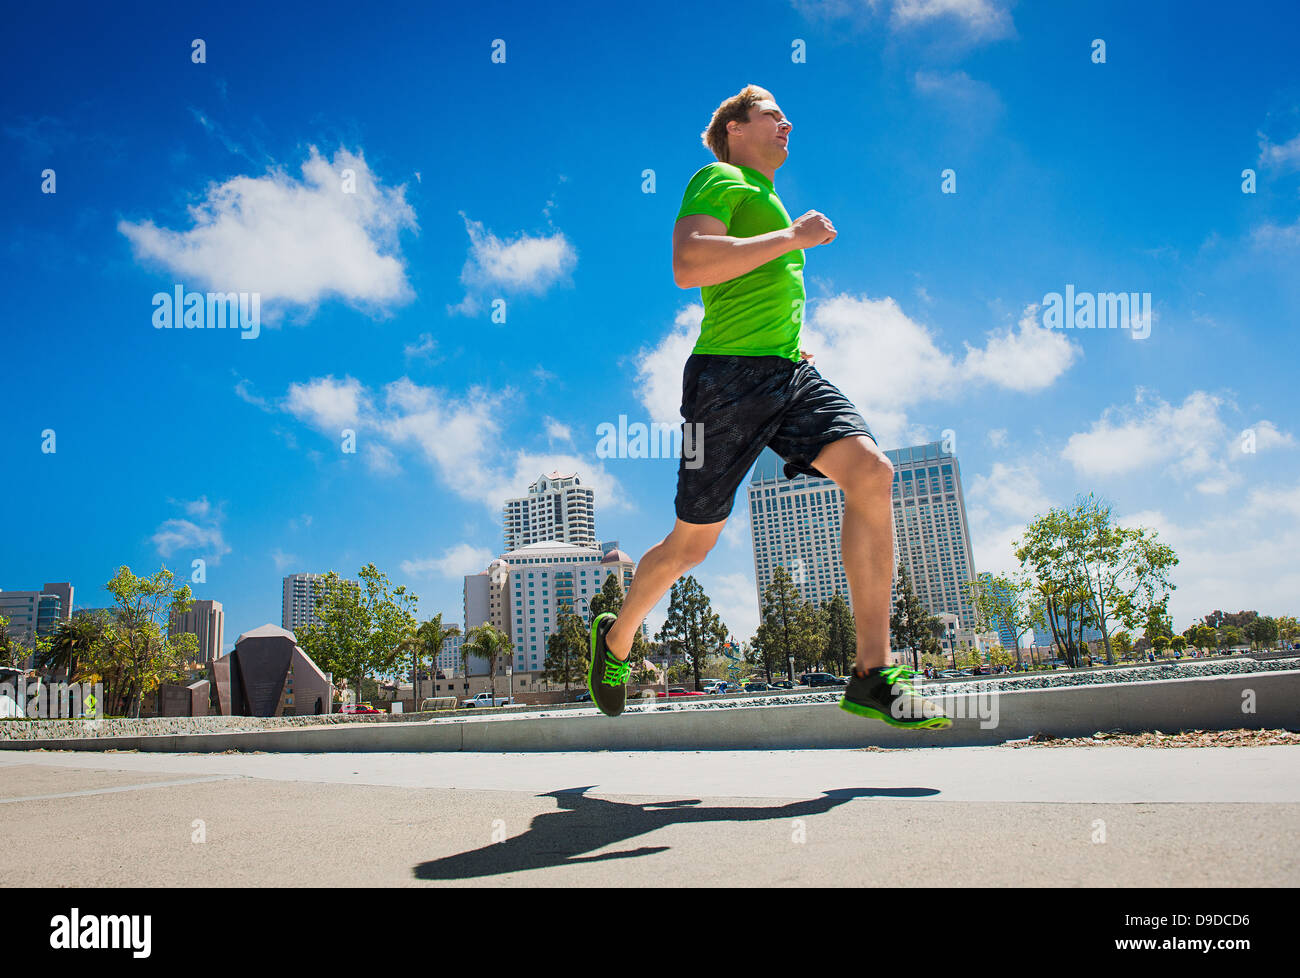 Young man jogging in city - Stock Image